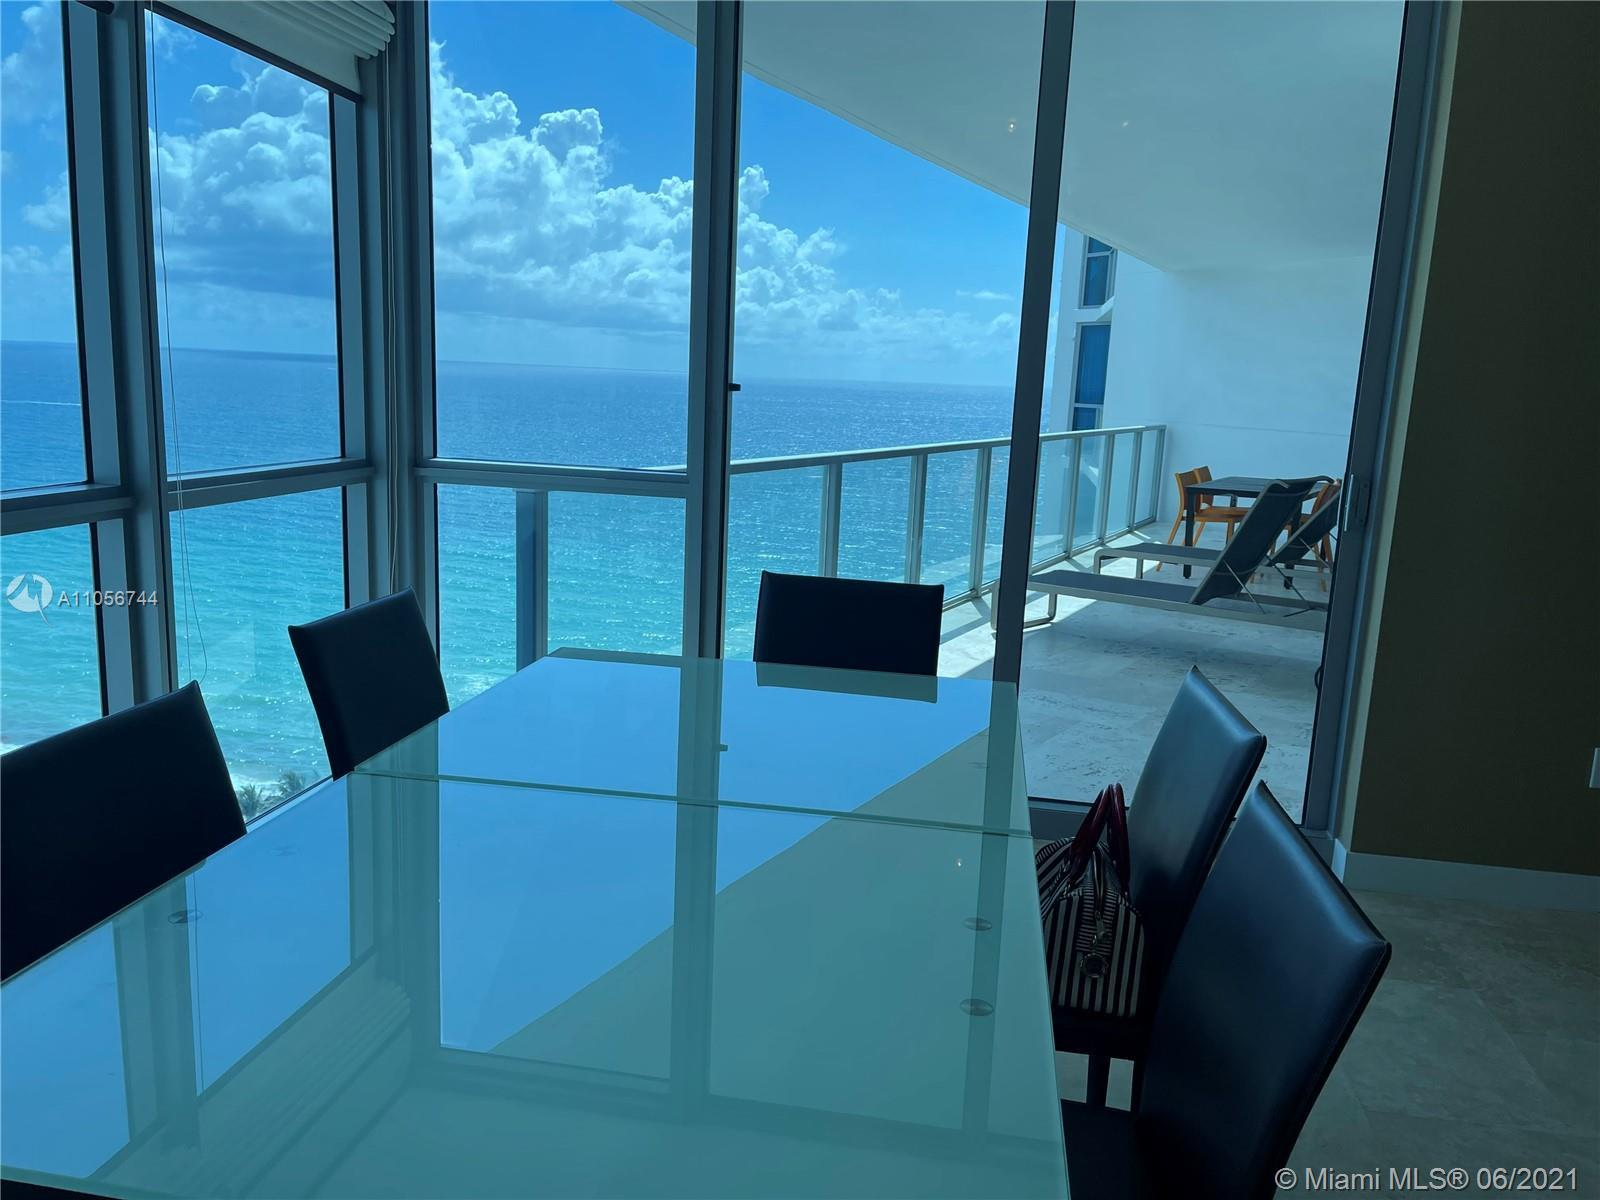 Welcome to an amazing lifestyle choice at the prestigious Ocean Palms. Enjoy direct ocean views from